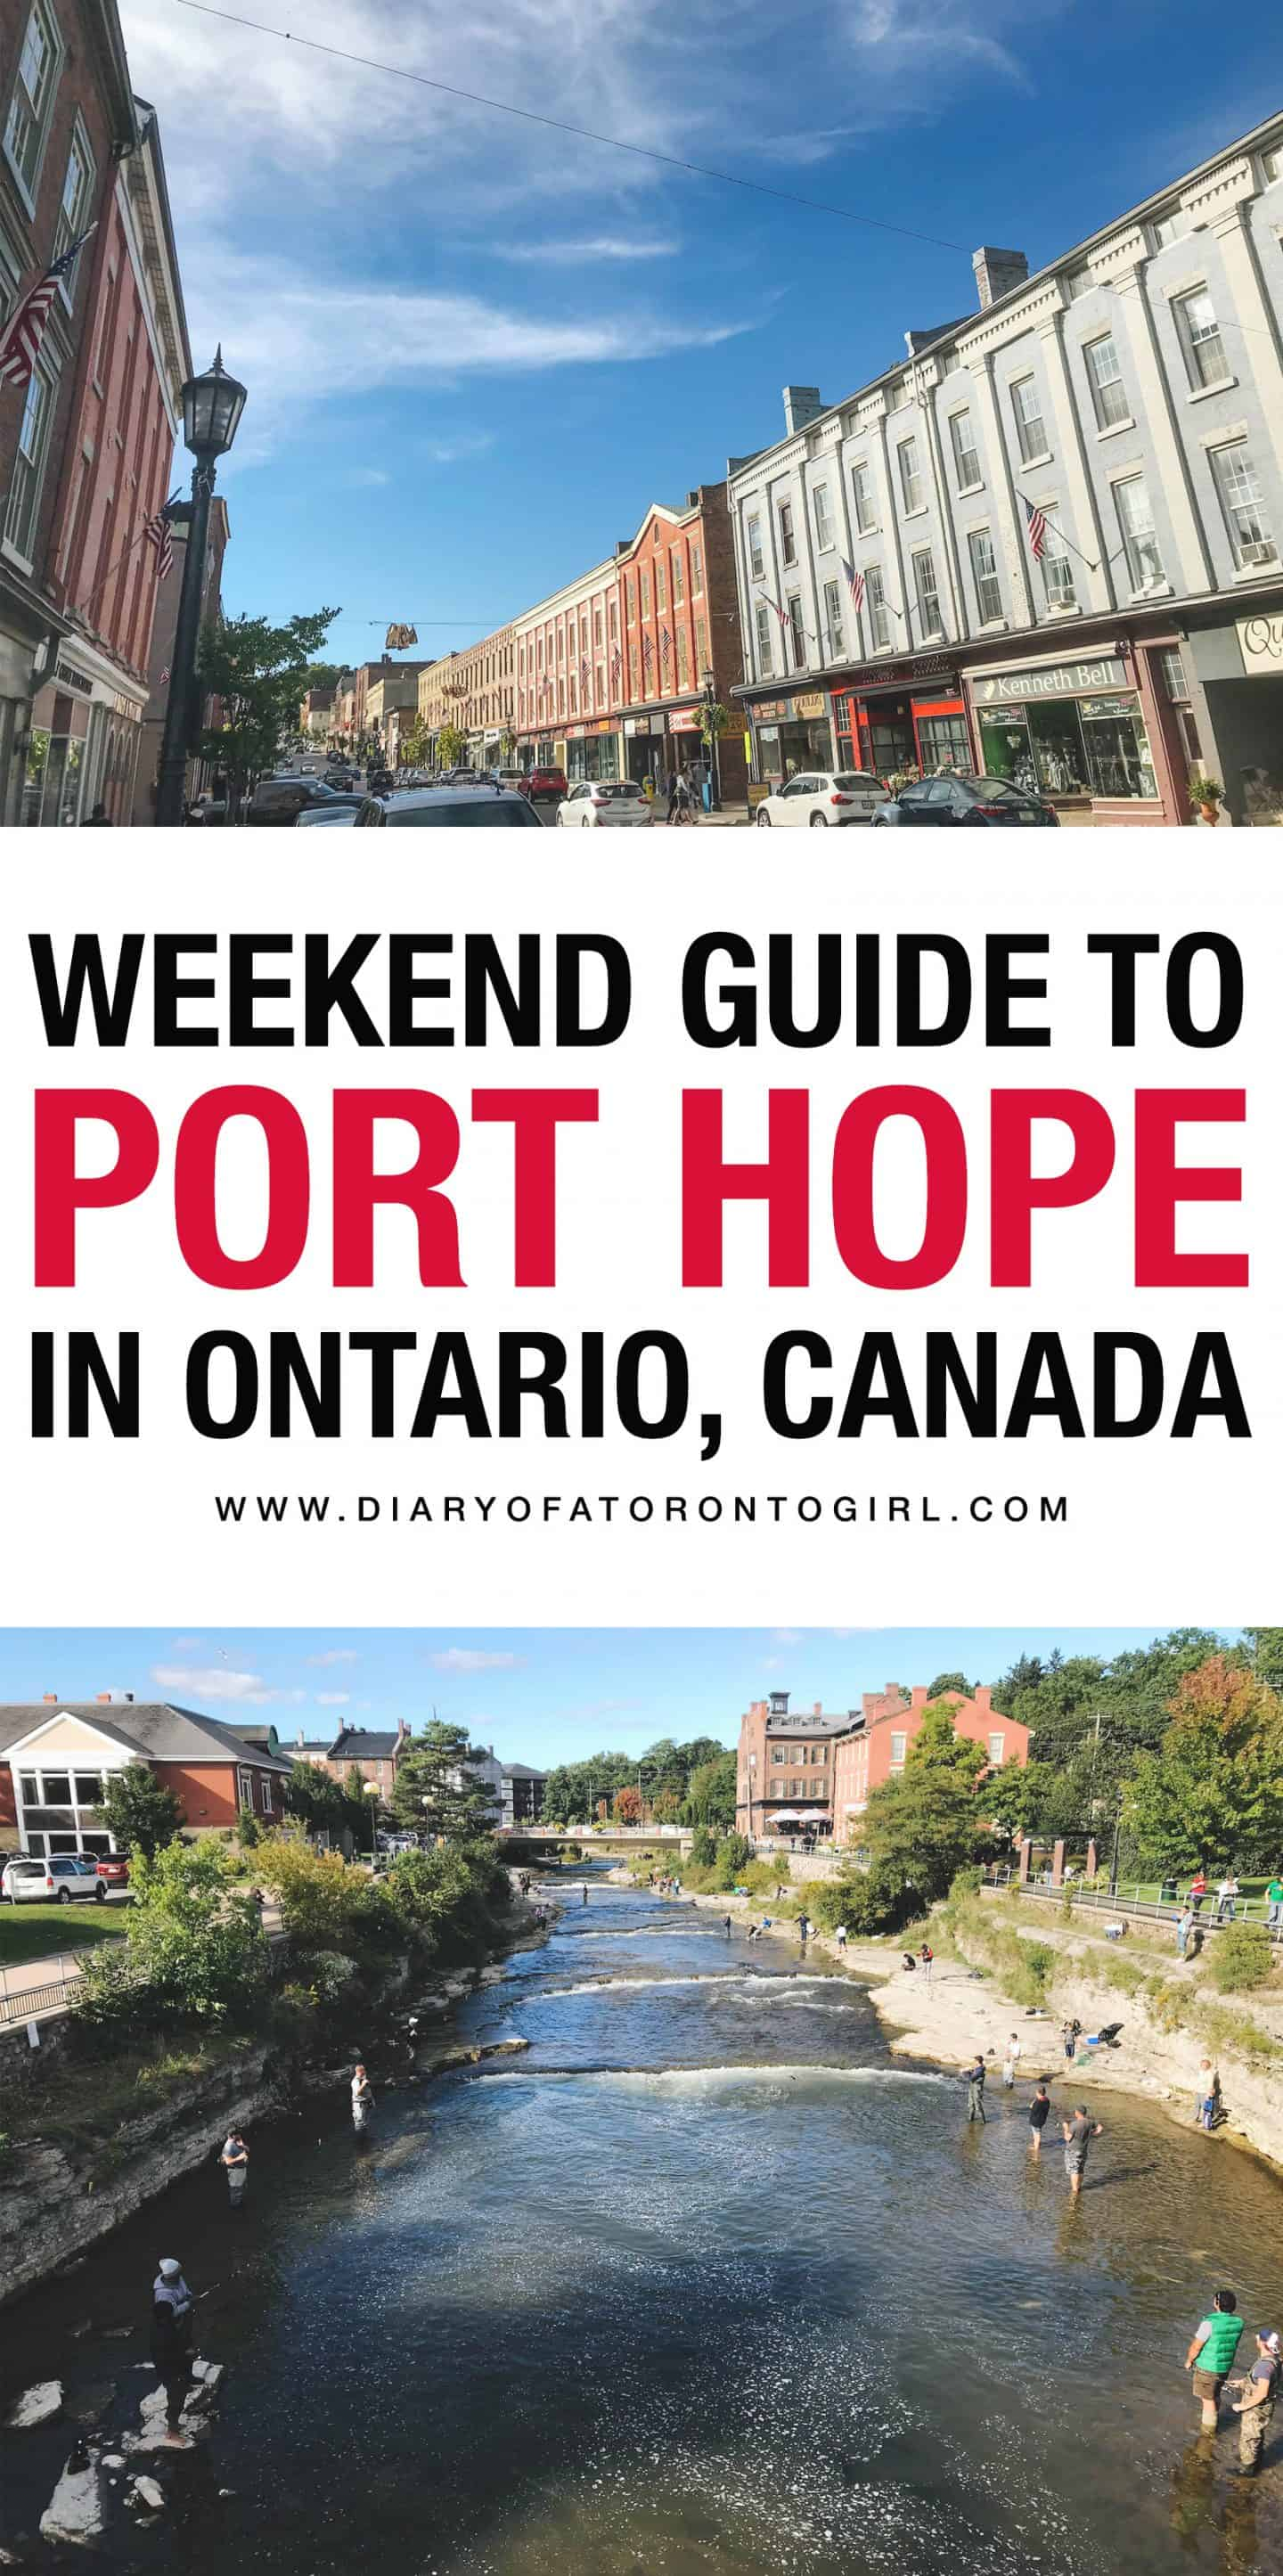 Port Hope is a charming little town for a weekend getaway. Here's where to stay, what to do, and where to eat in Port Hope, Ontario!